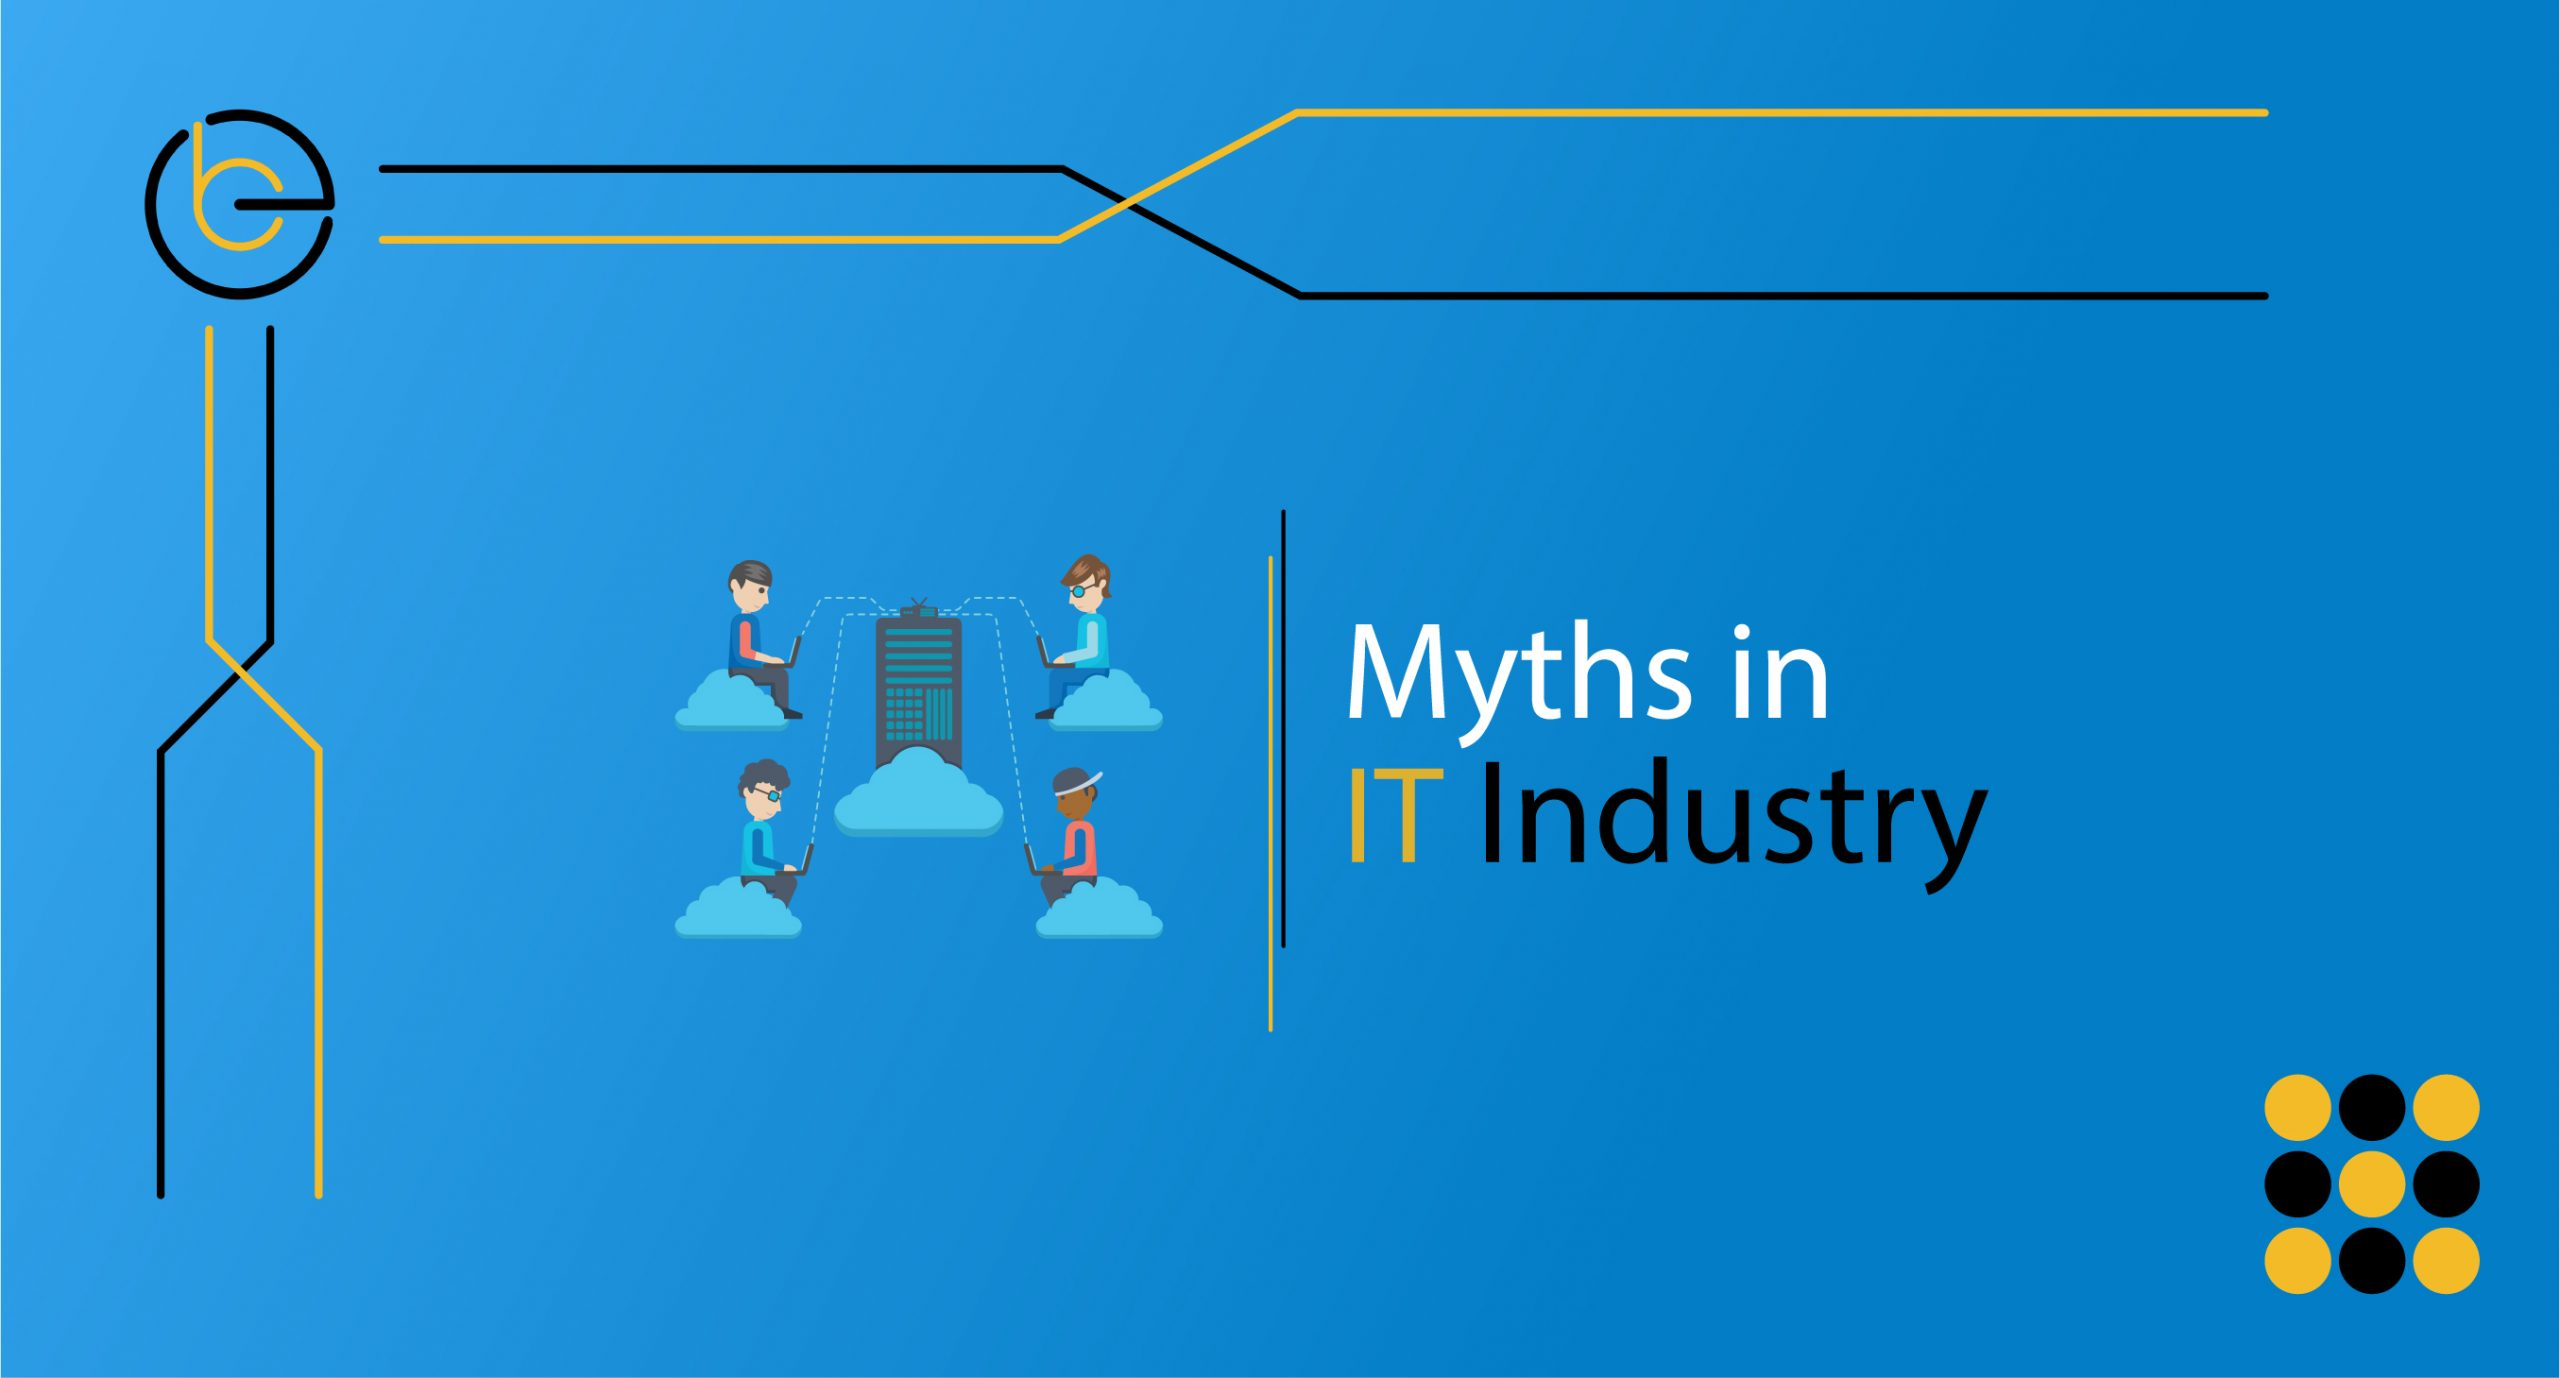 Myths in the IT industry